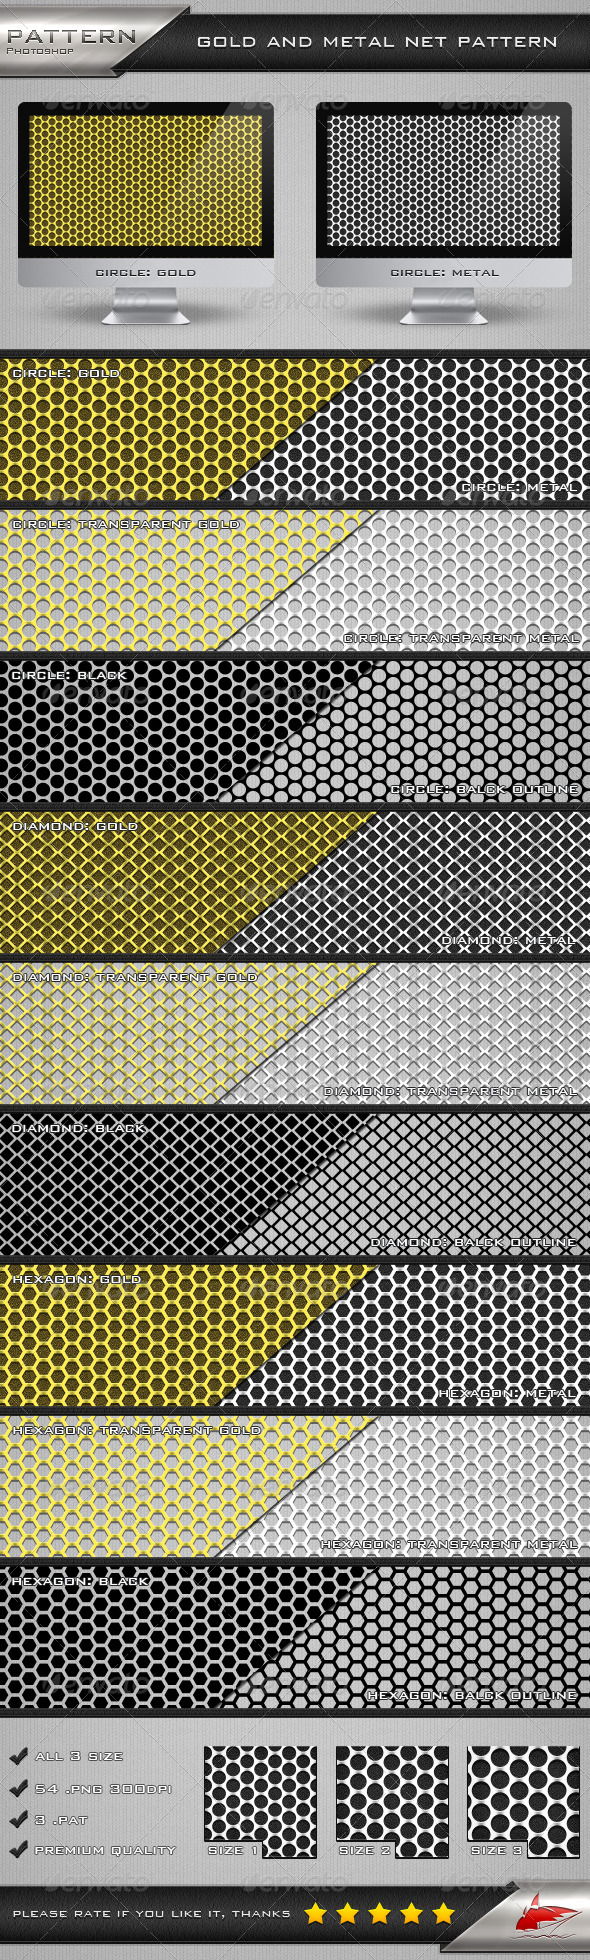 GraphicRiver Gold and Metal Net Pattern 6887409